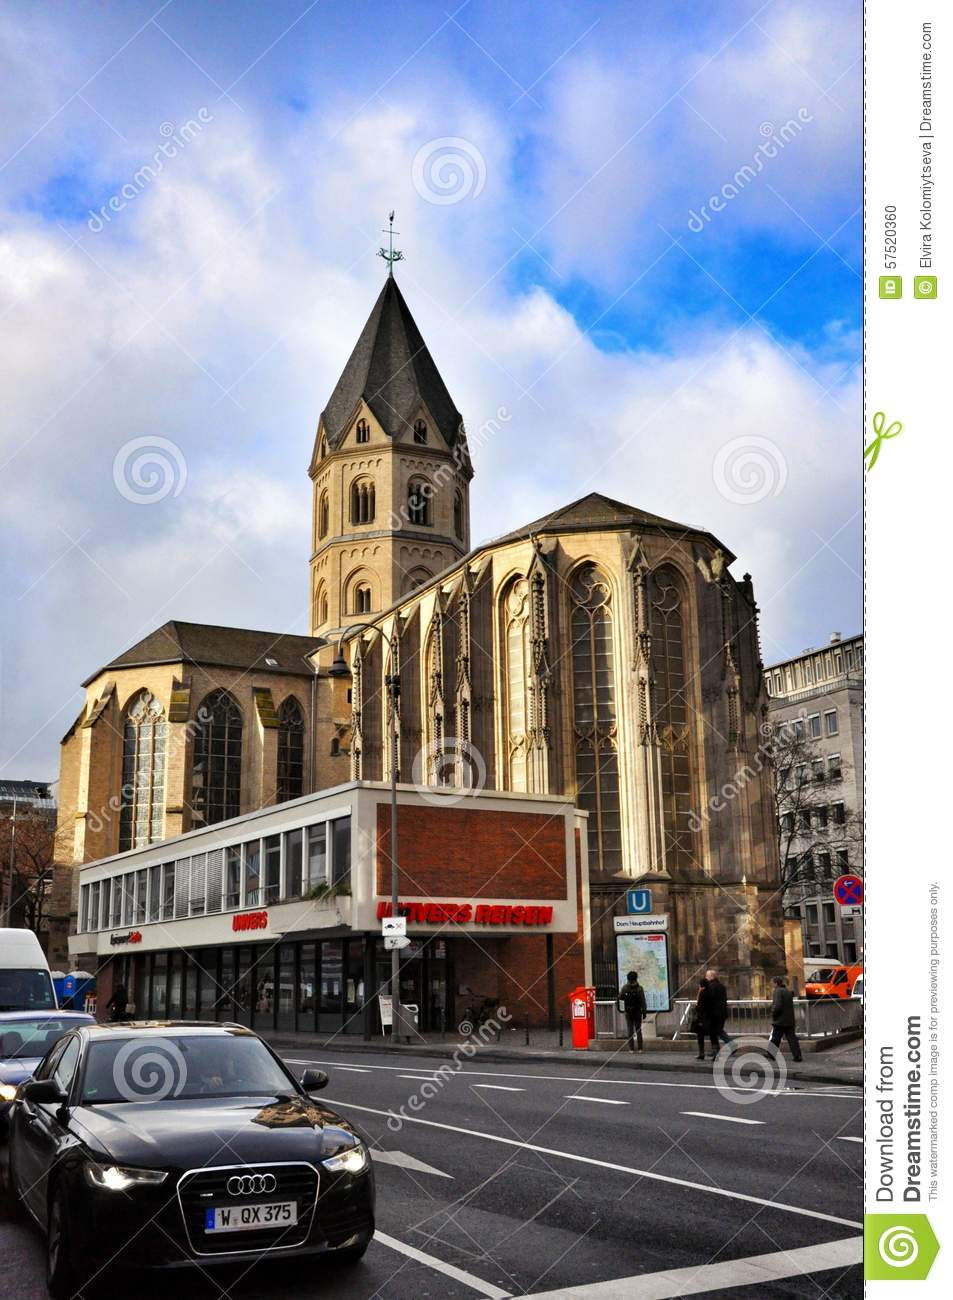 St Andrews Church in Cologne